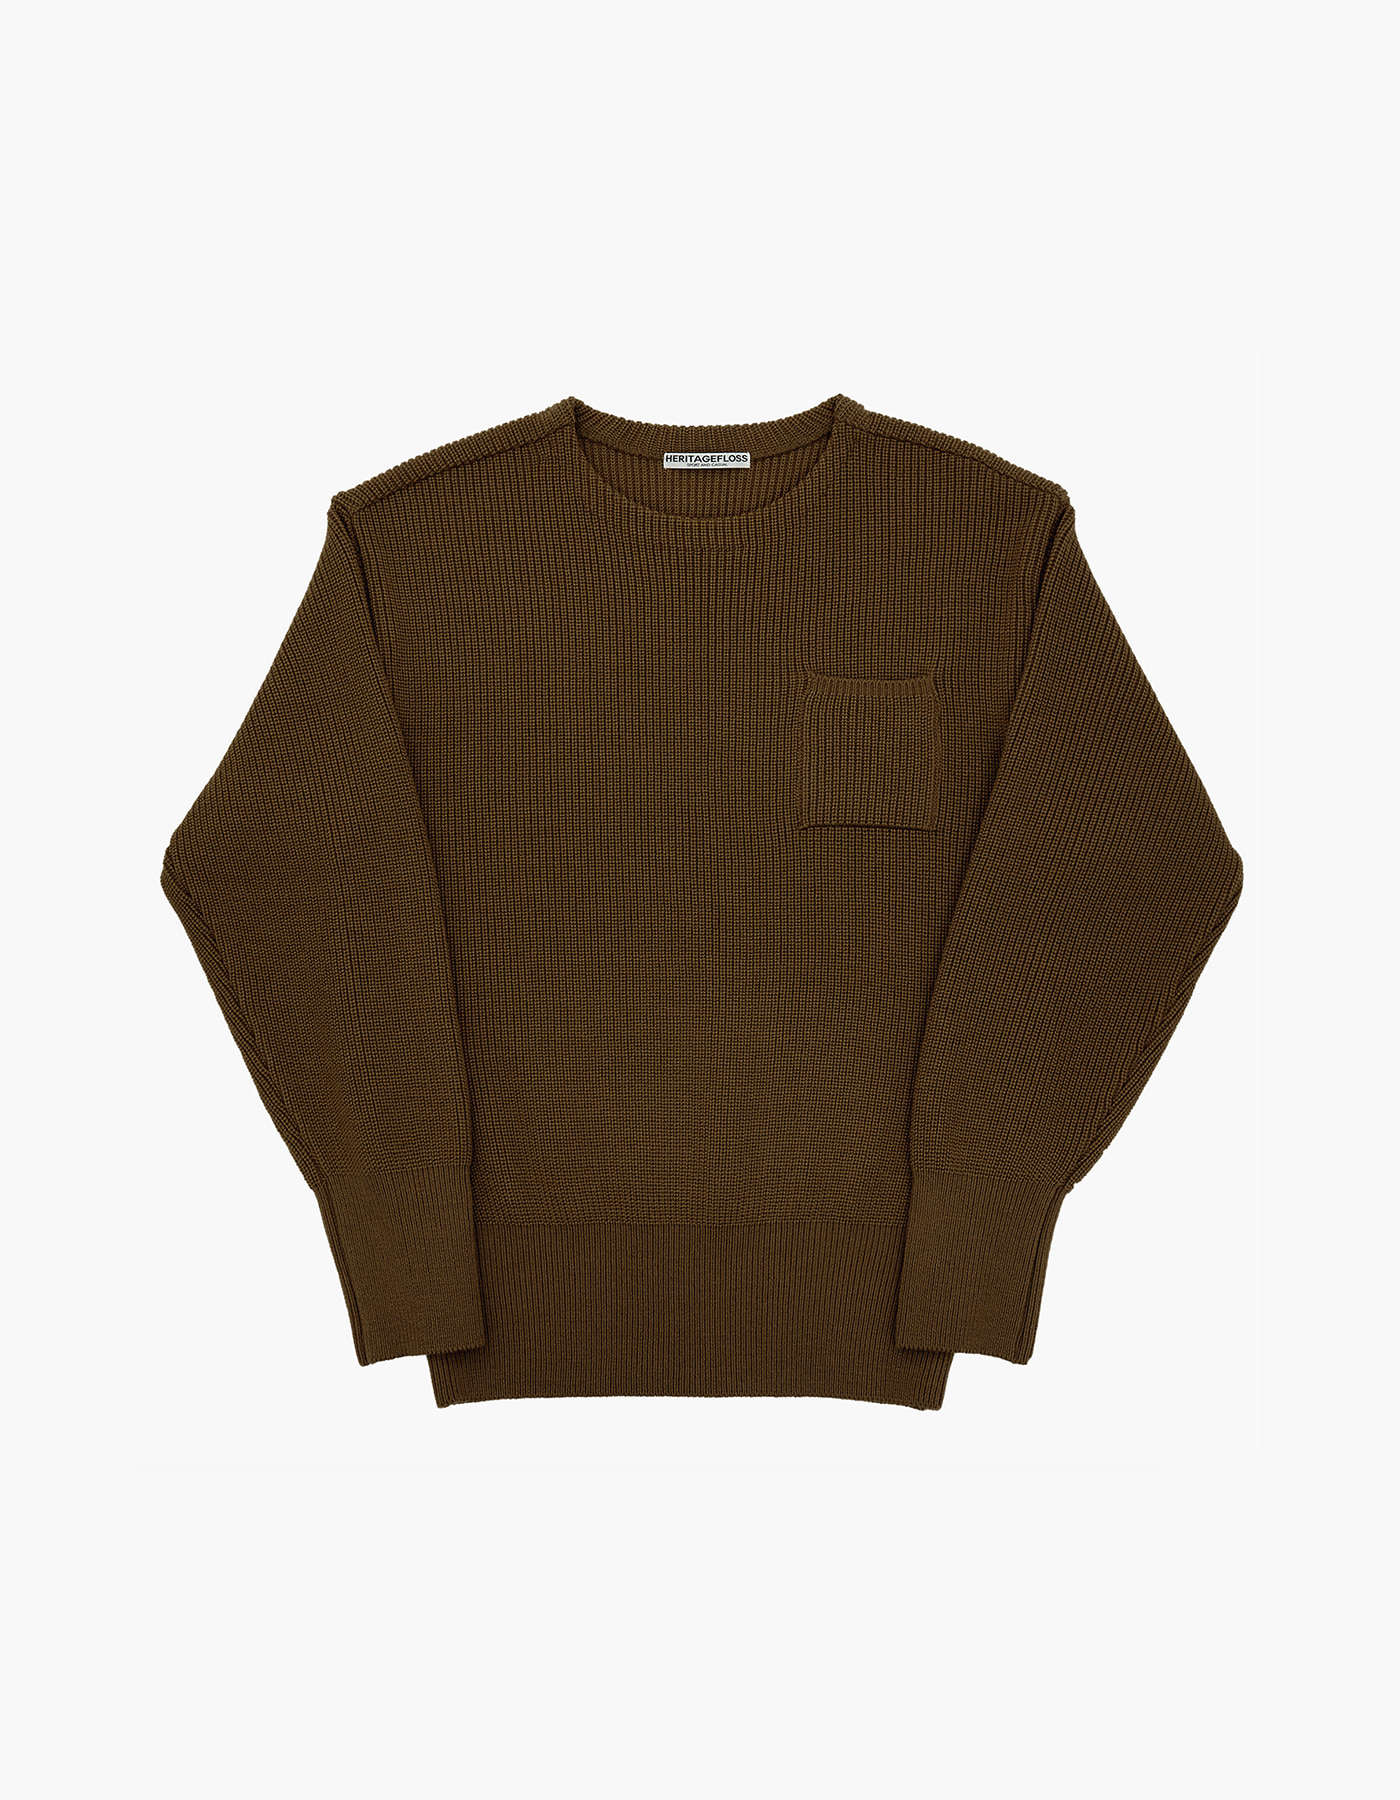 WOOL KNIT / BROWN